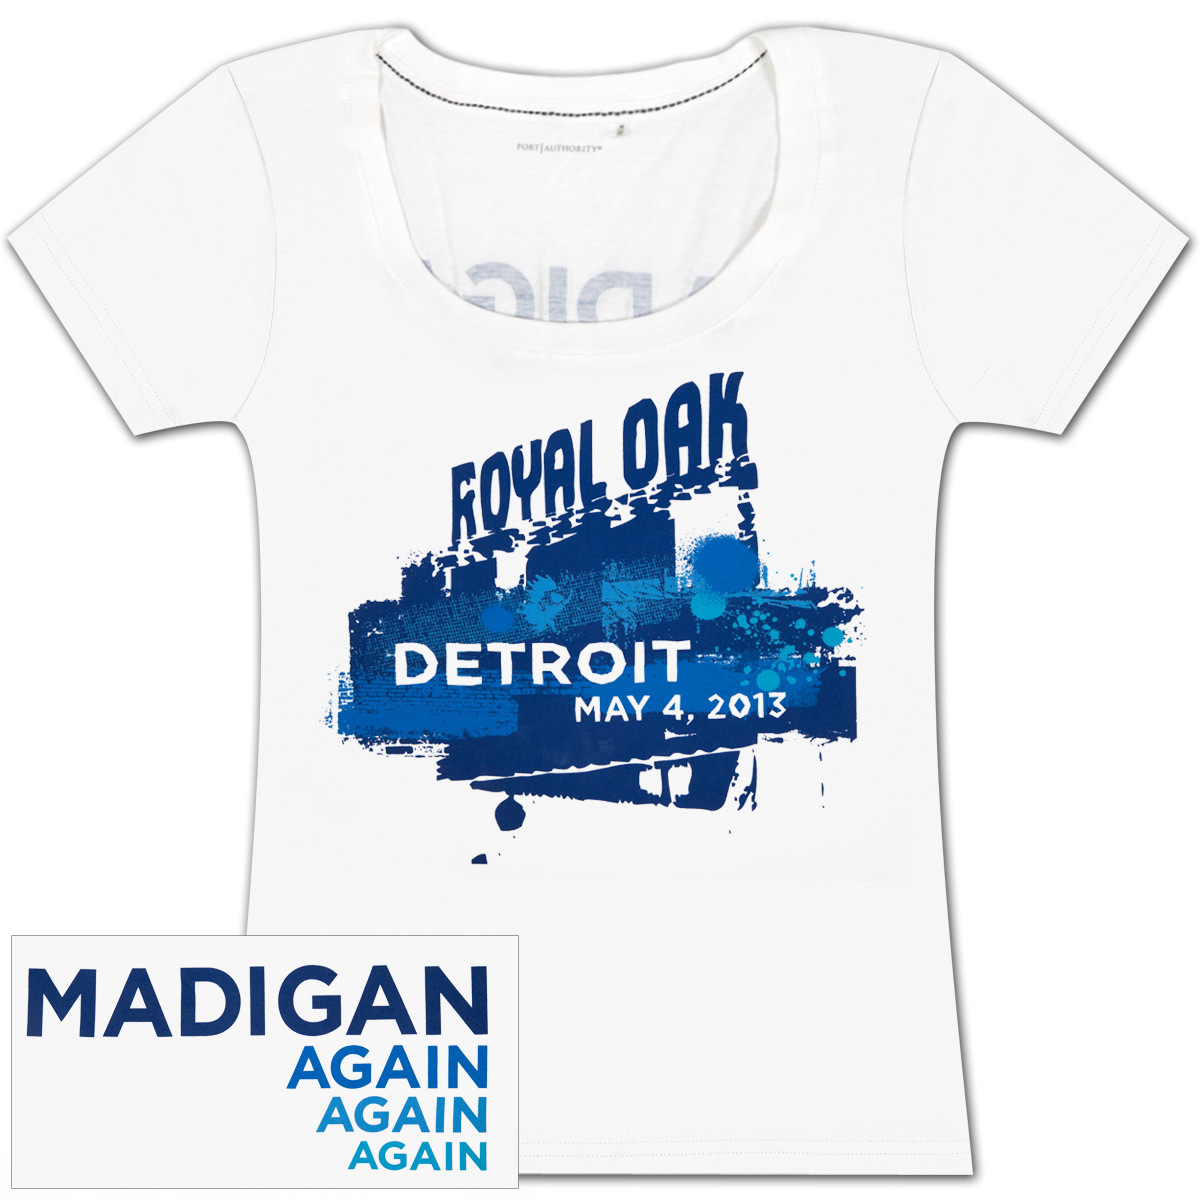 Kathleen Madigan - Women's Madigan Again T-Shirt